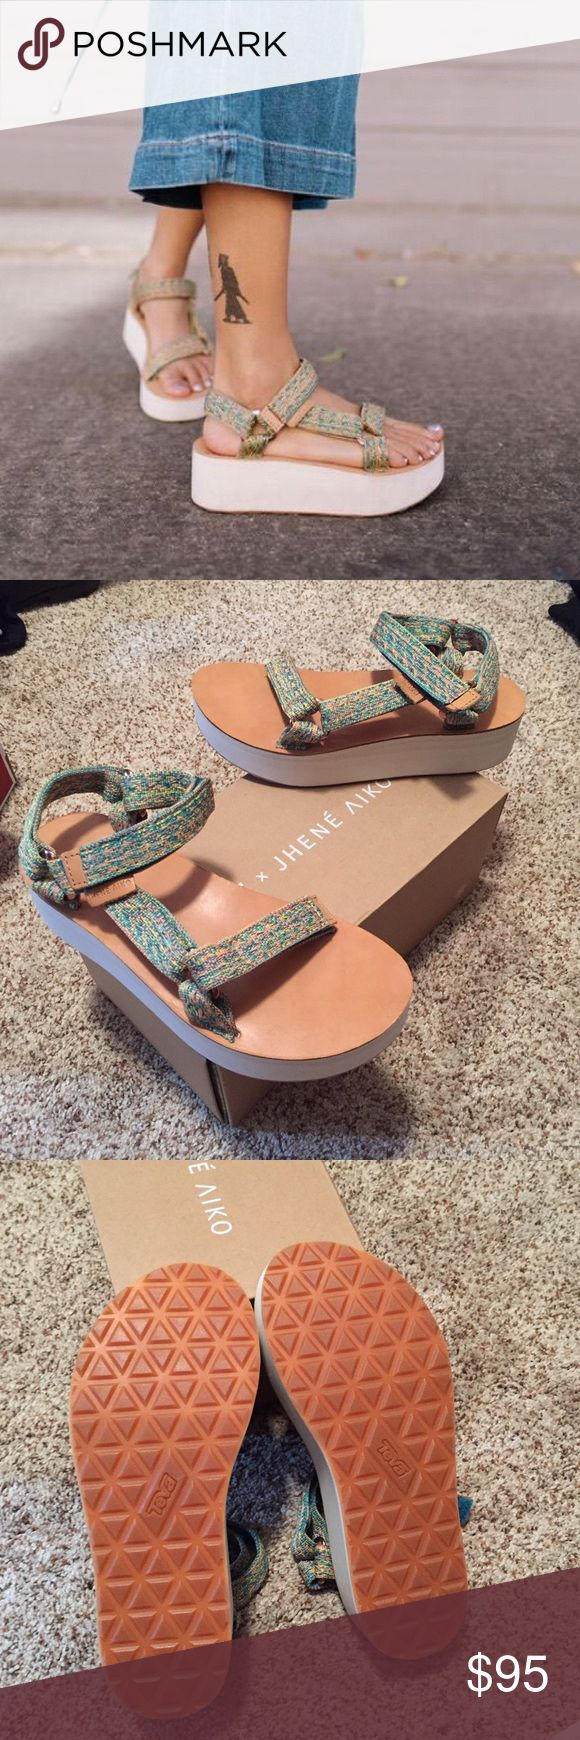 SALE NWT Jhene AikoxTeva Universal Platform brand new with tags, comes with original box. Jhene Aiko x Teva limited edition Collab. No trades. women's size 8. (original price is $70) THANKSGIVING SALE, SELLING AT LOWEST PRICE, THEREFORE NO OFFER WILL BE ACCEPTED Teva Shoes Sandals